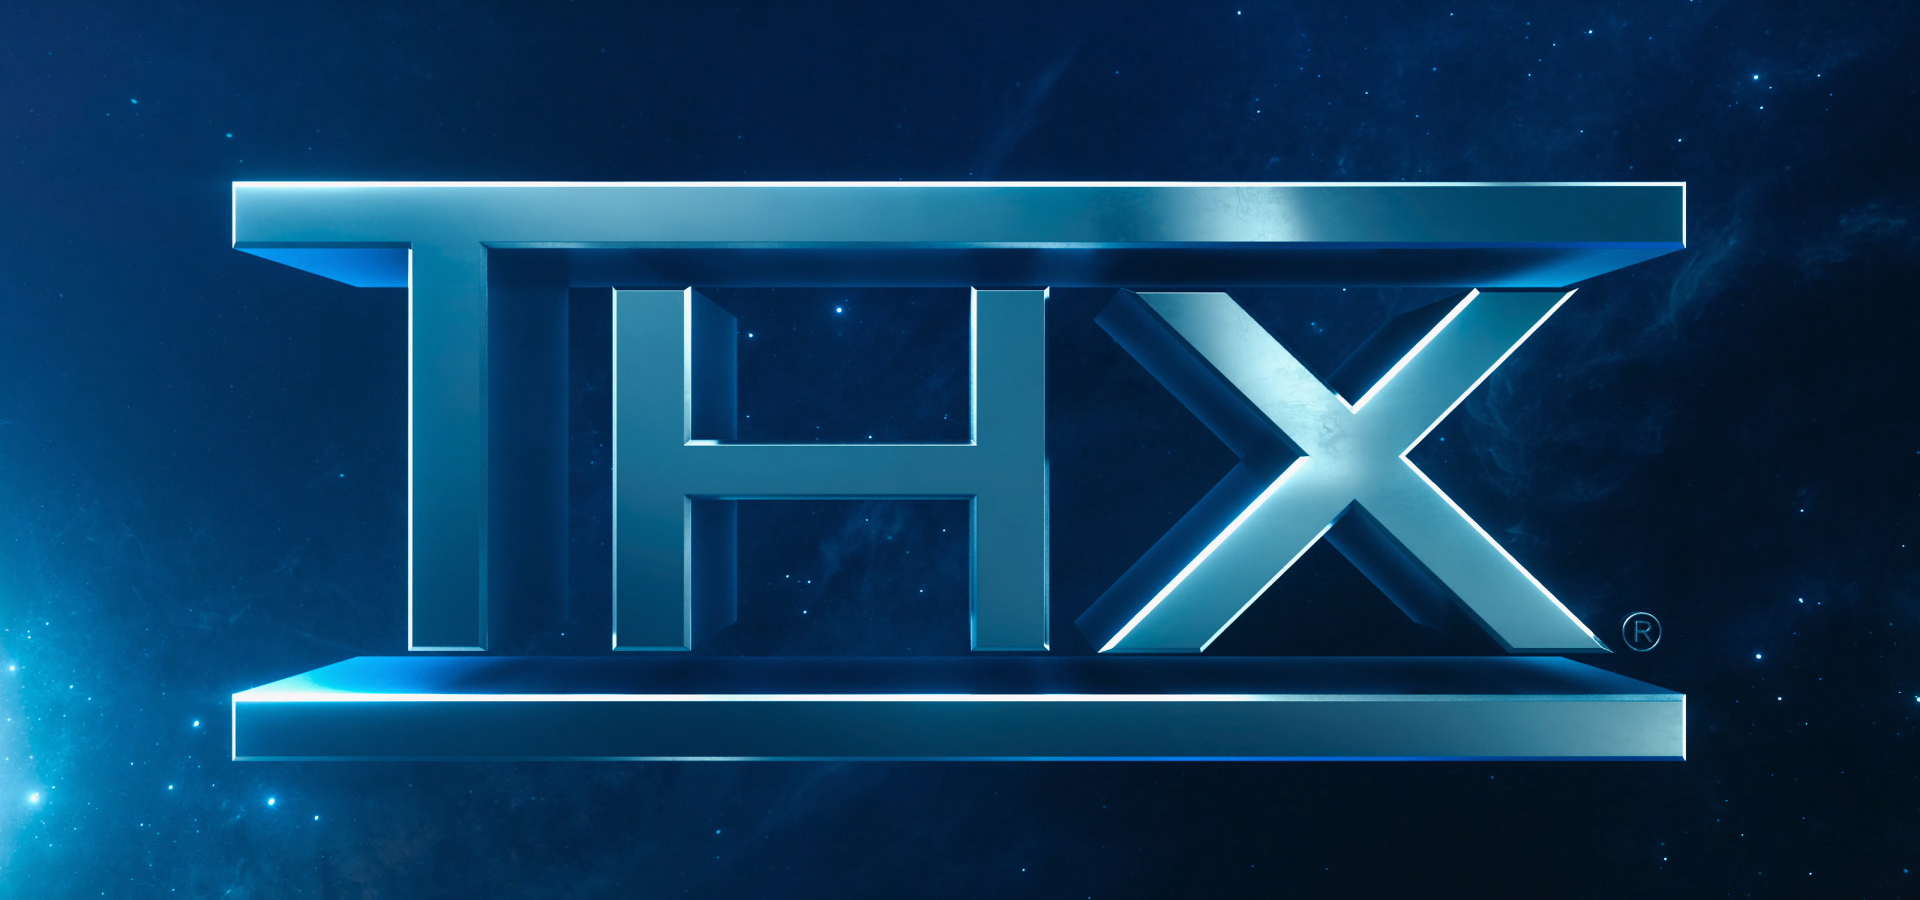 The new THX trailer Deep Note 2019 is ready - made by Andrew Kramer!